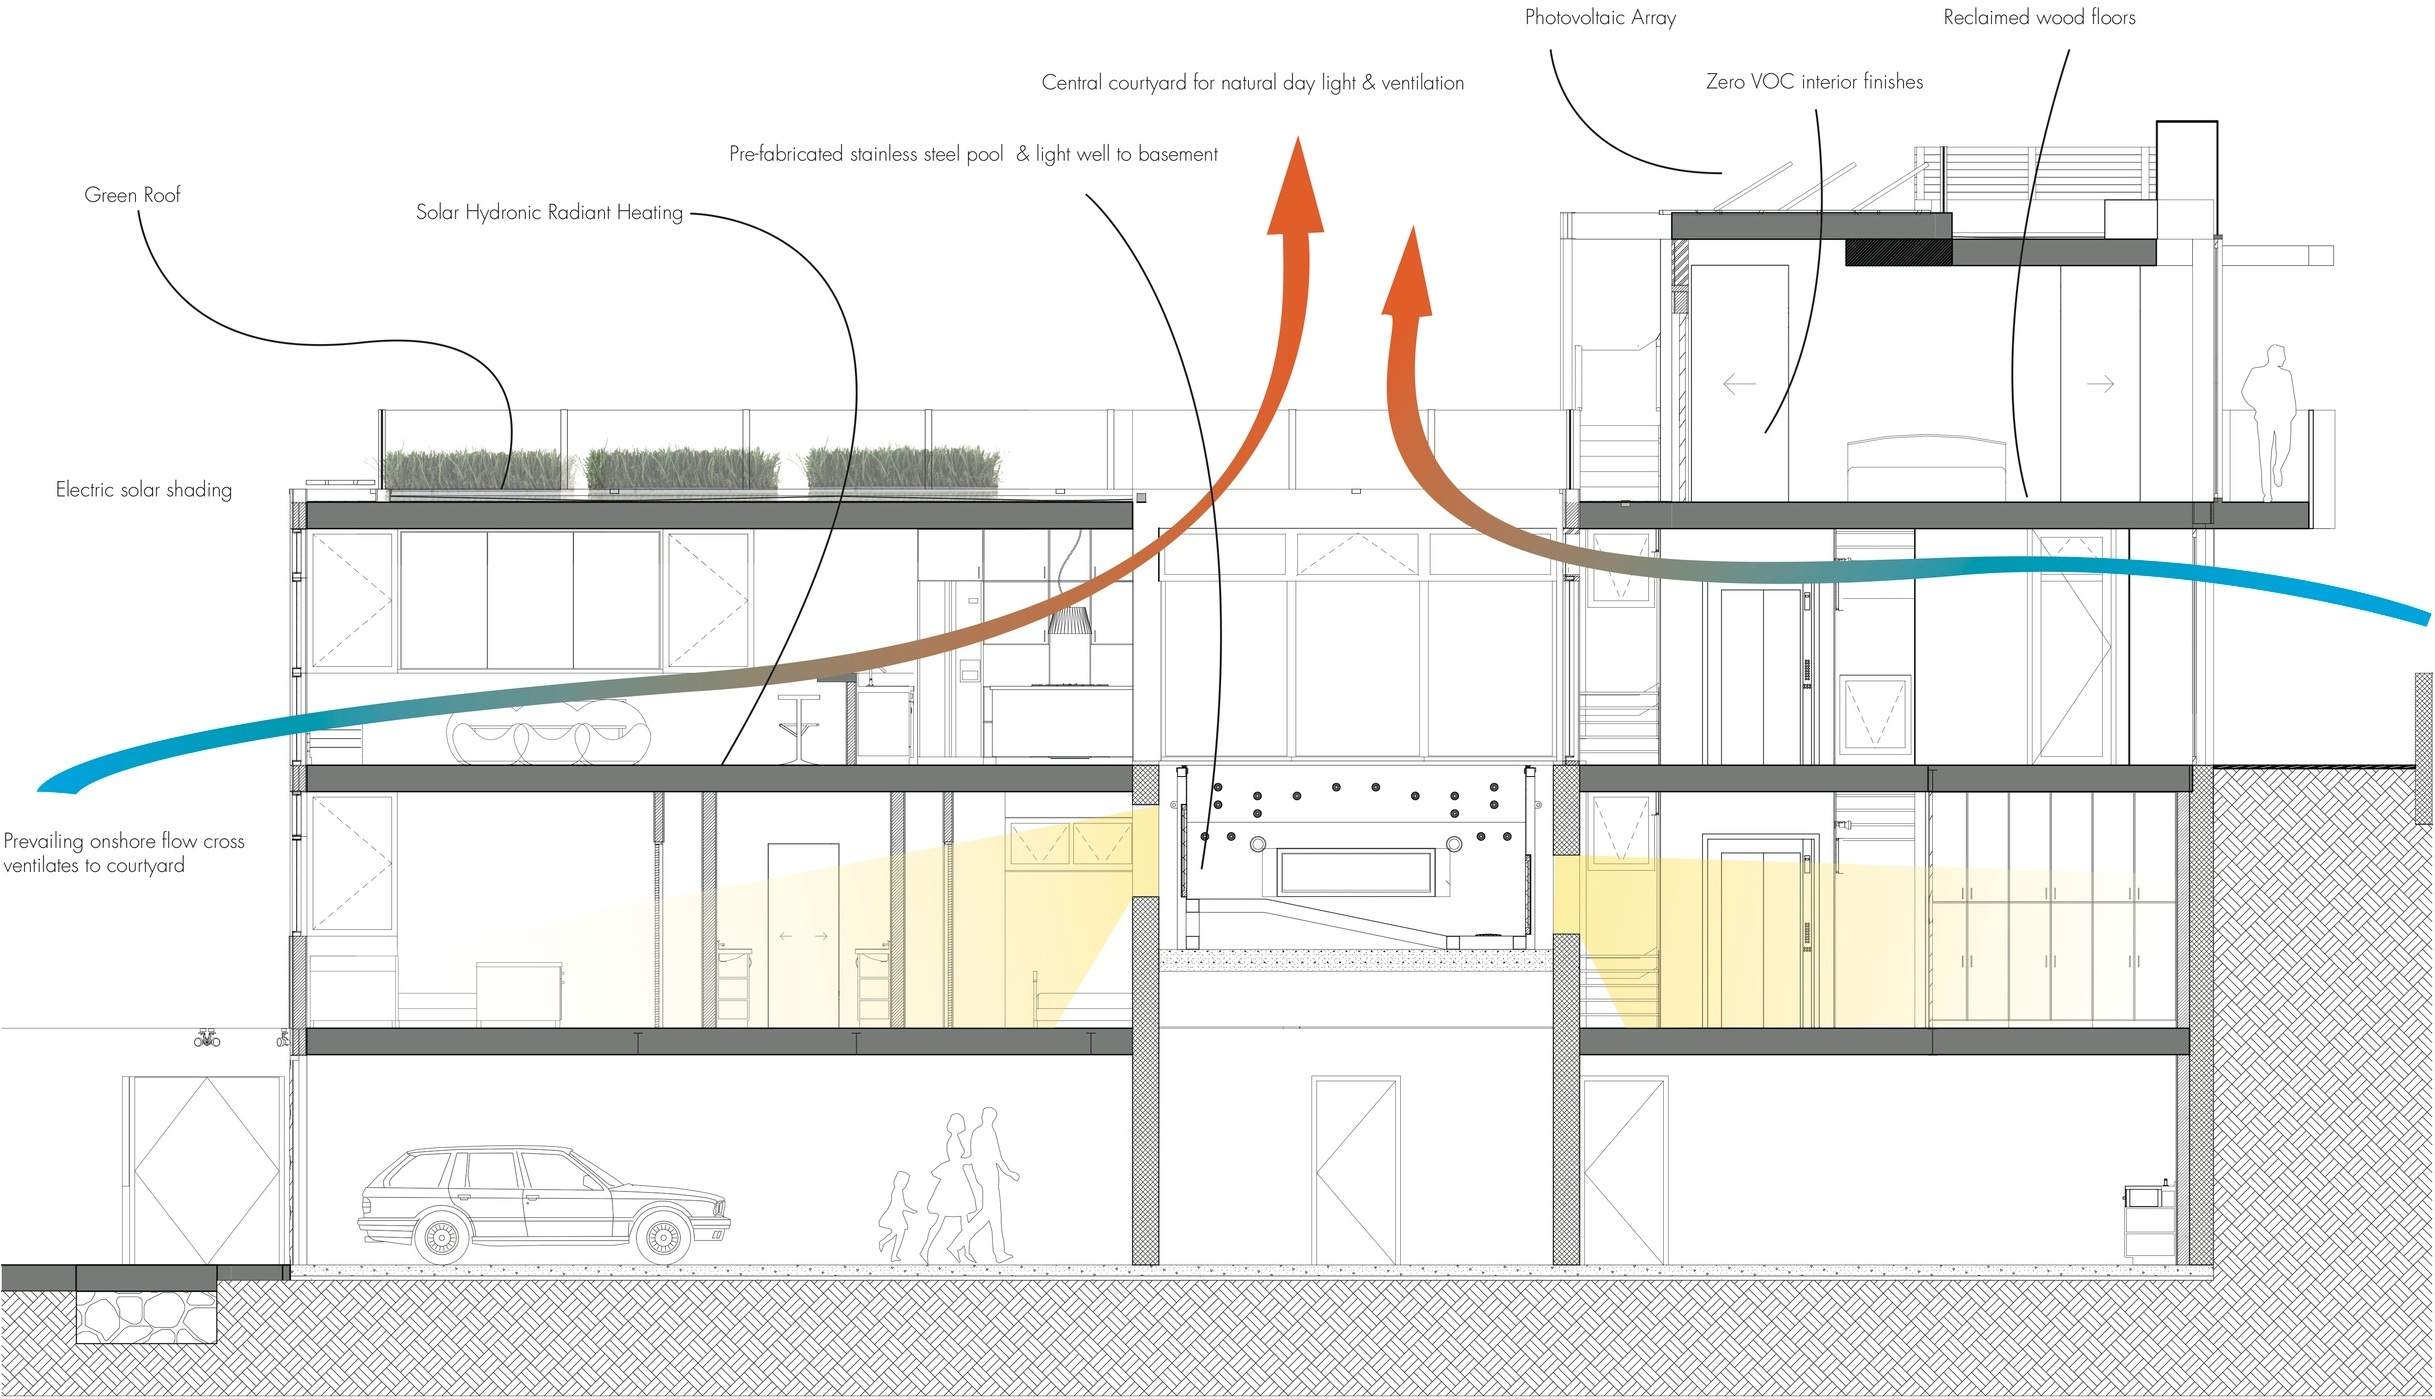 Natural lighting and ventilation sectional diagram